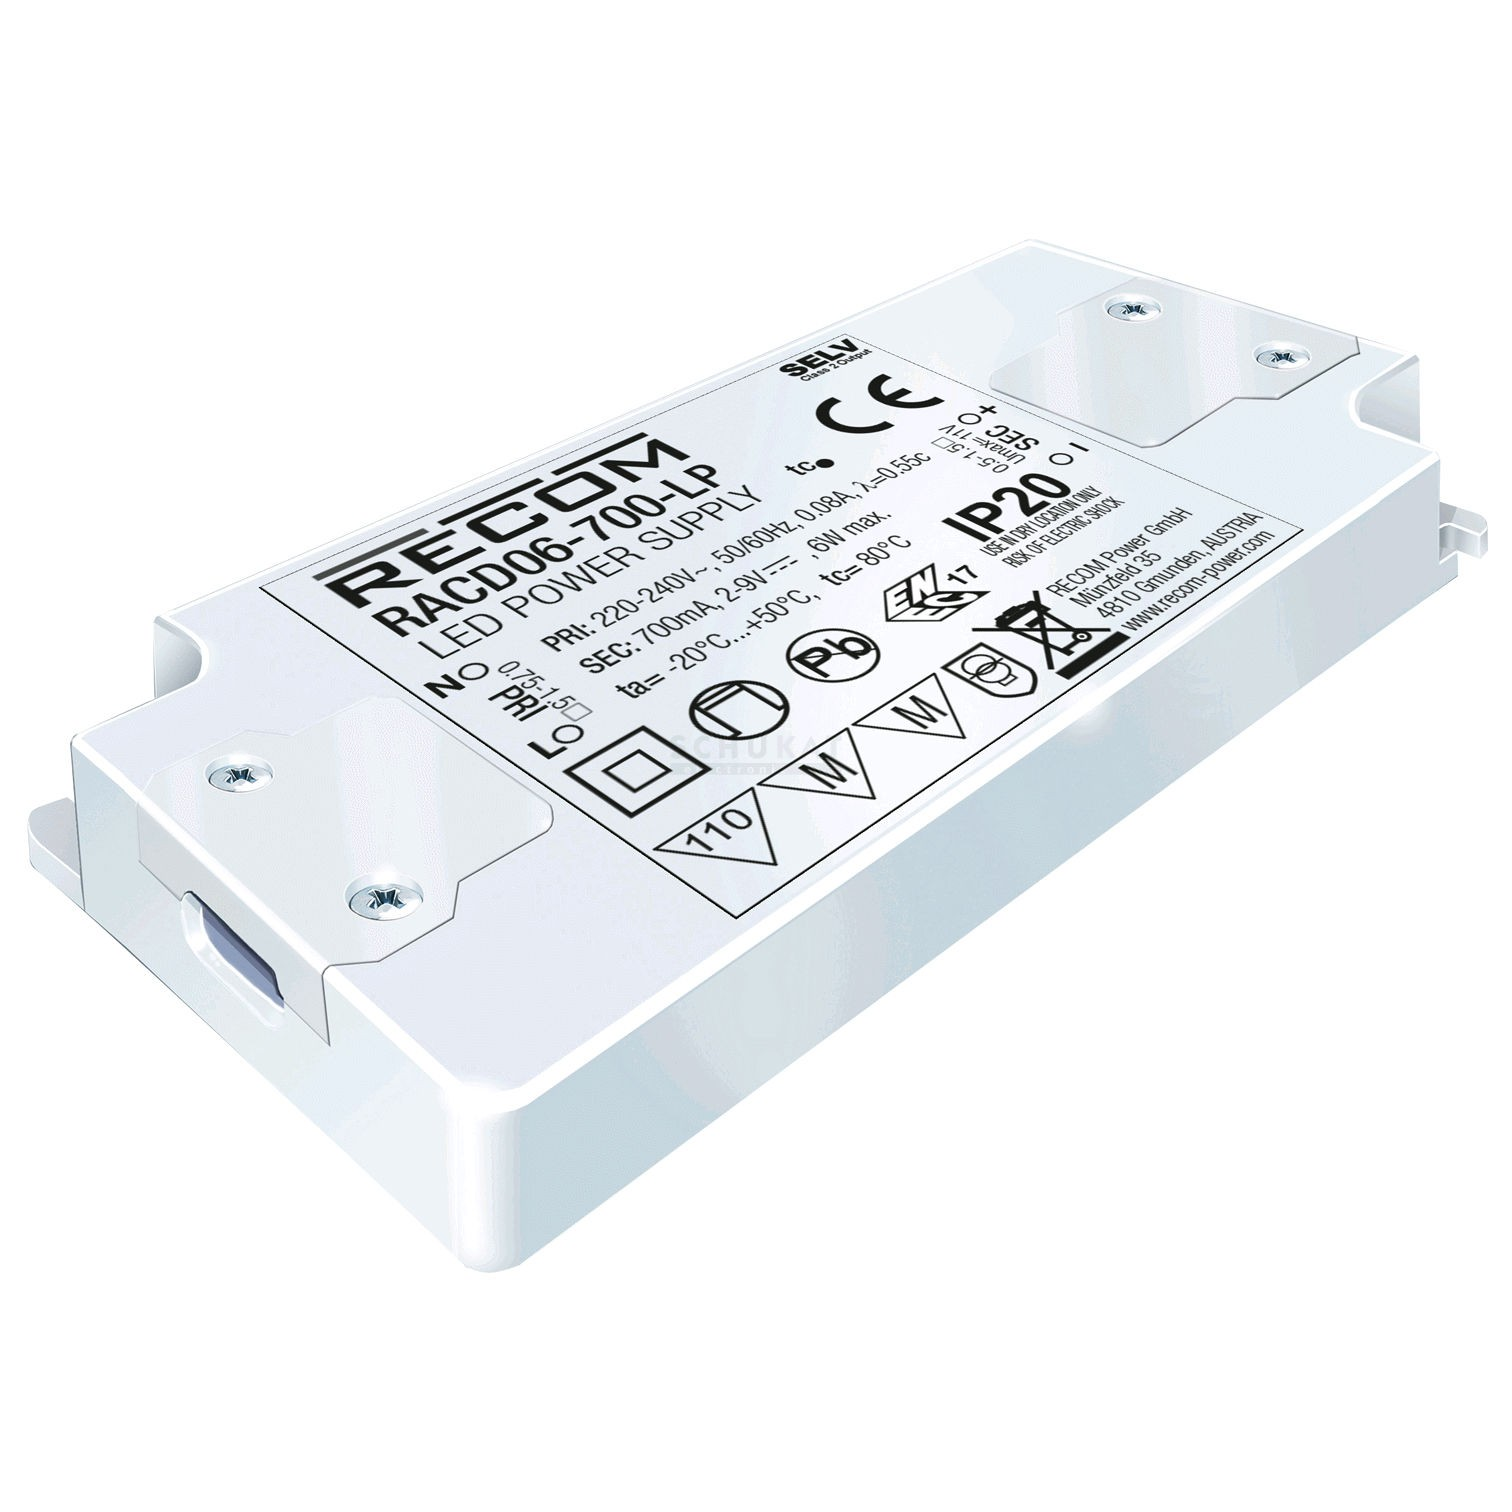 Adapter Led Verlichting Led Driver 2 12vdc 500ma 6w Ledvoedingen En Leddrivers